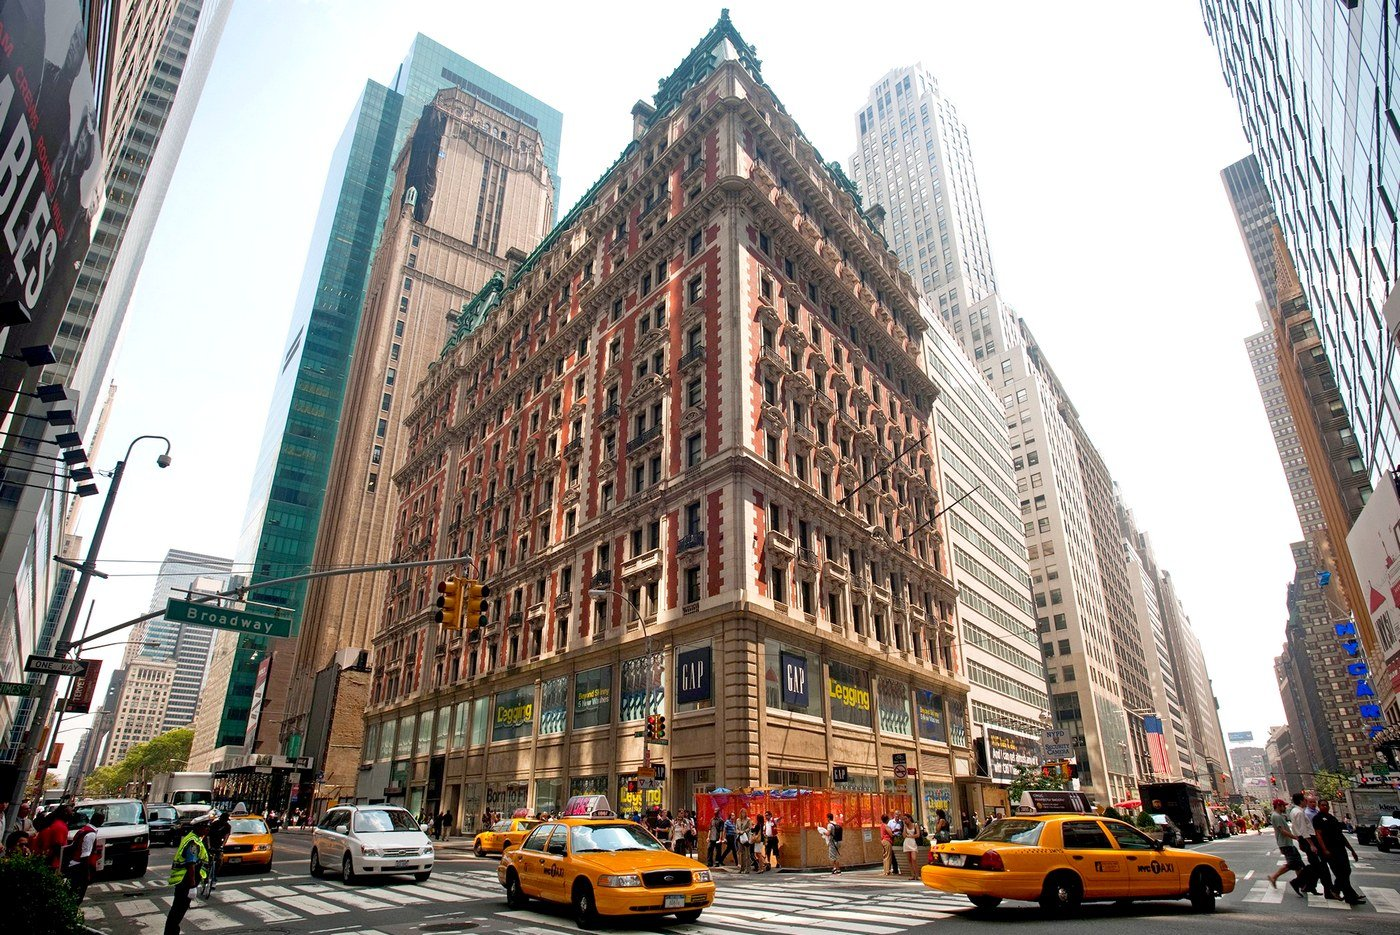 New York Hotel  Hotels Discounts  2020